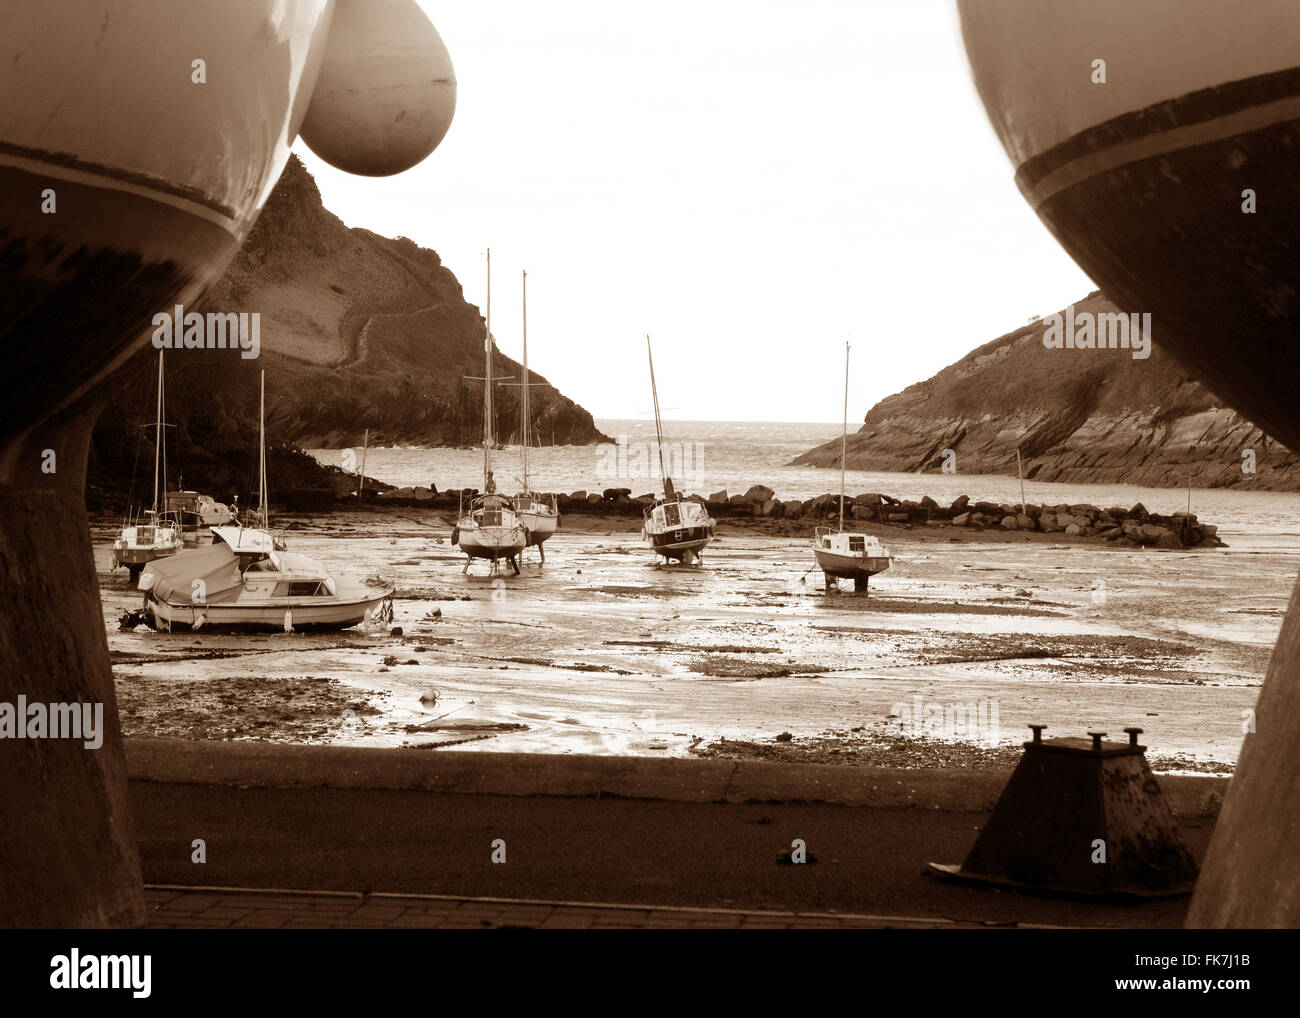 Watermouth Cove Near Ilfracombe Devon Tide out View from harbourside through hulls of boats Moody Picture - Stock Image